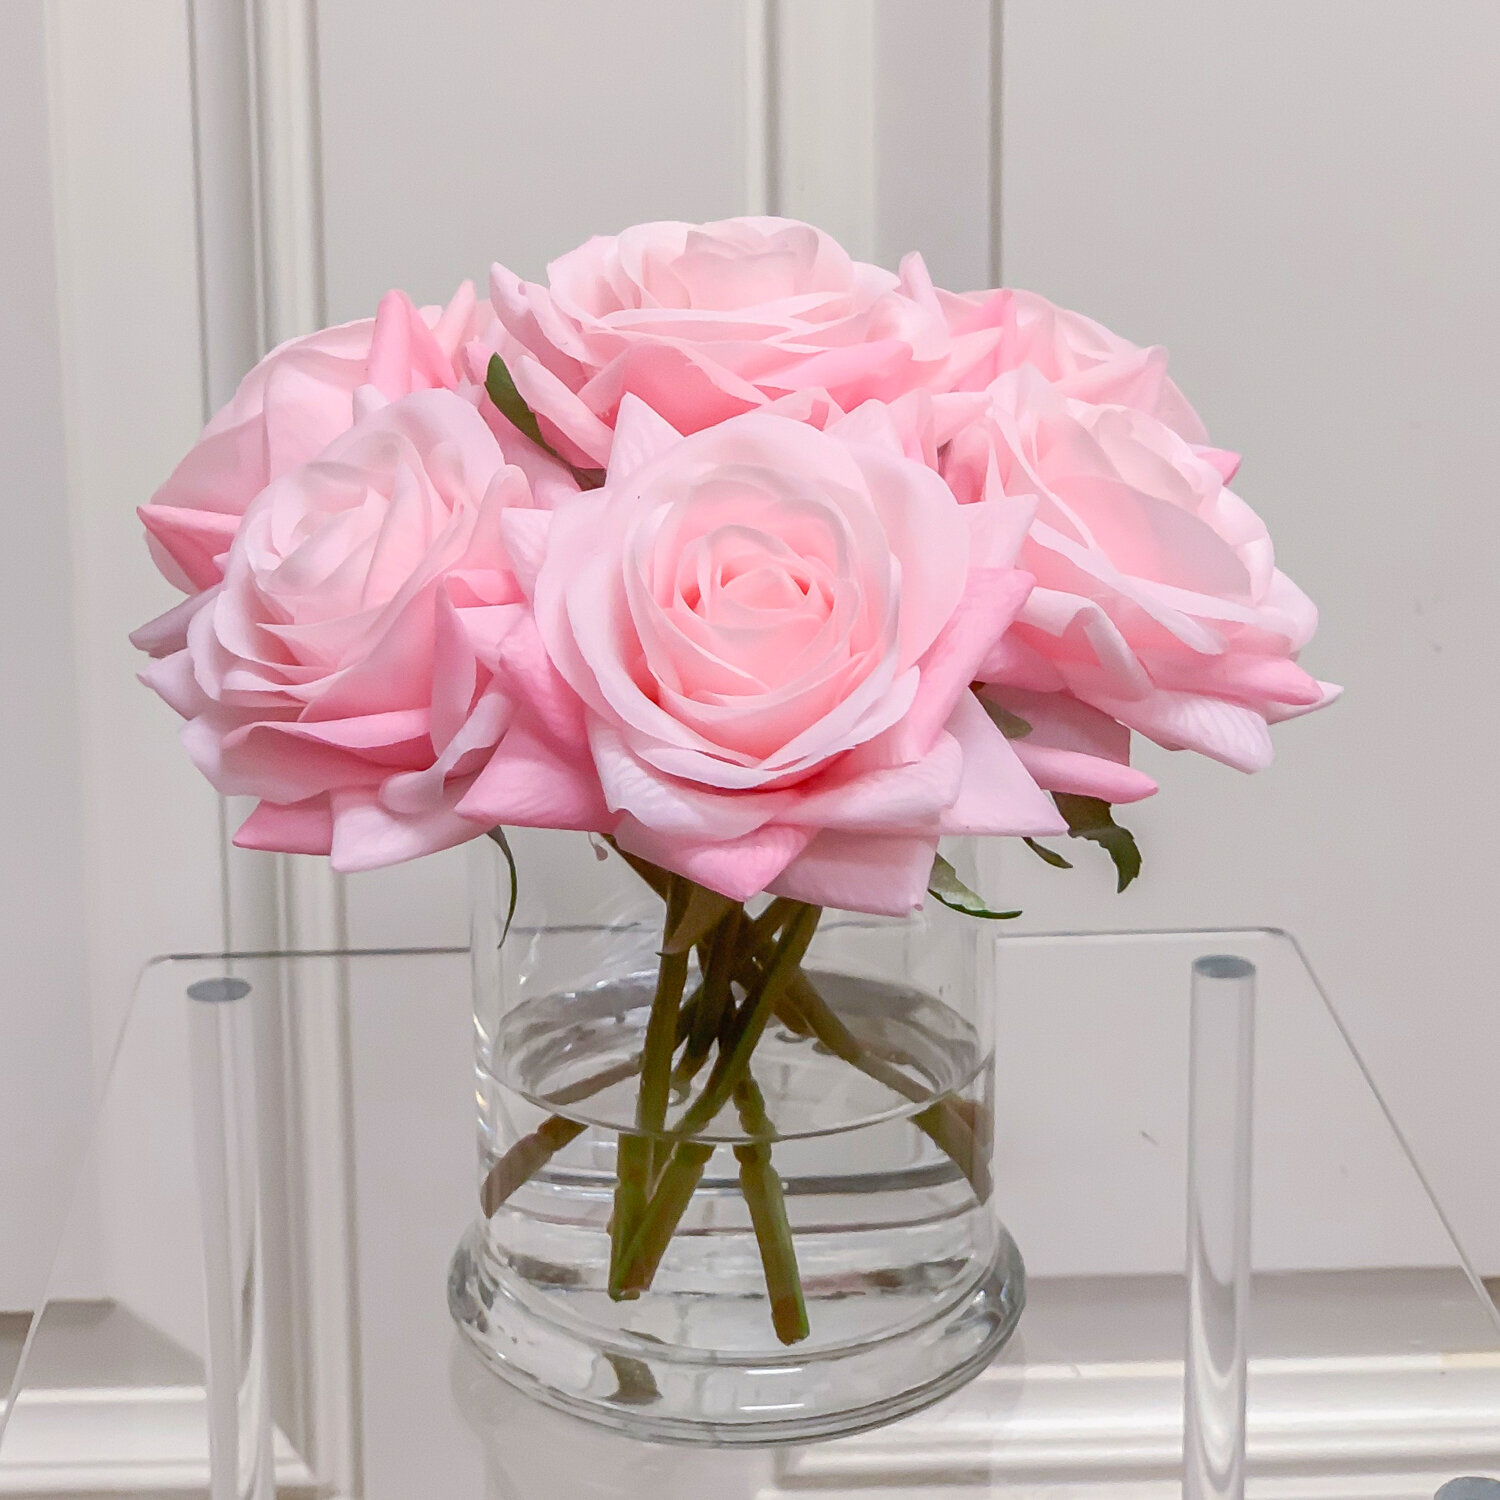 Latitude Run Real Touch Roses Floral Arrangements In Glass Vase Reviews Wayfair